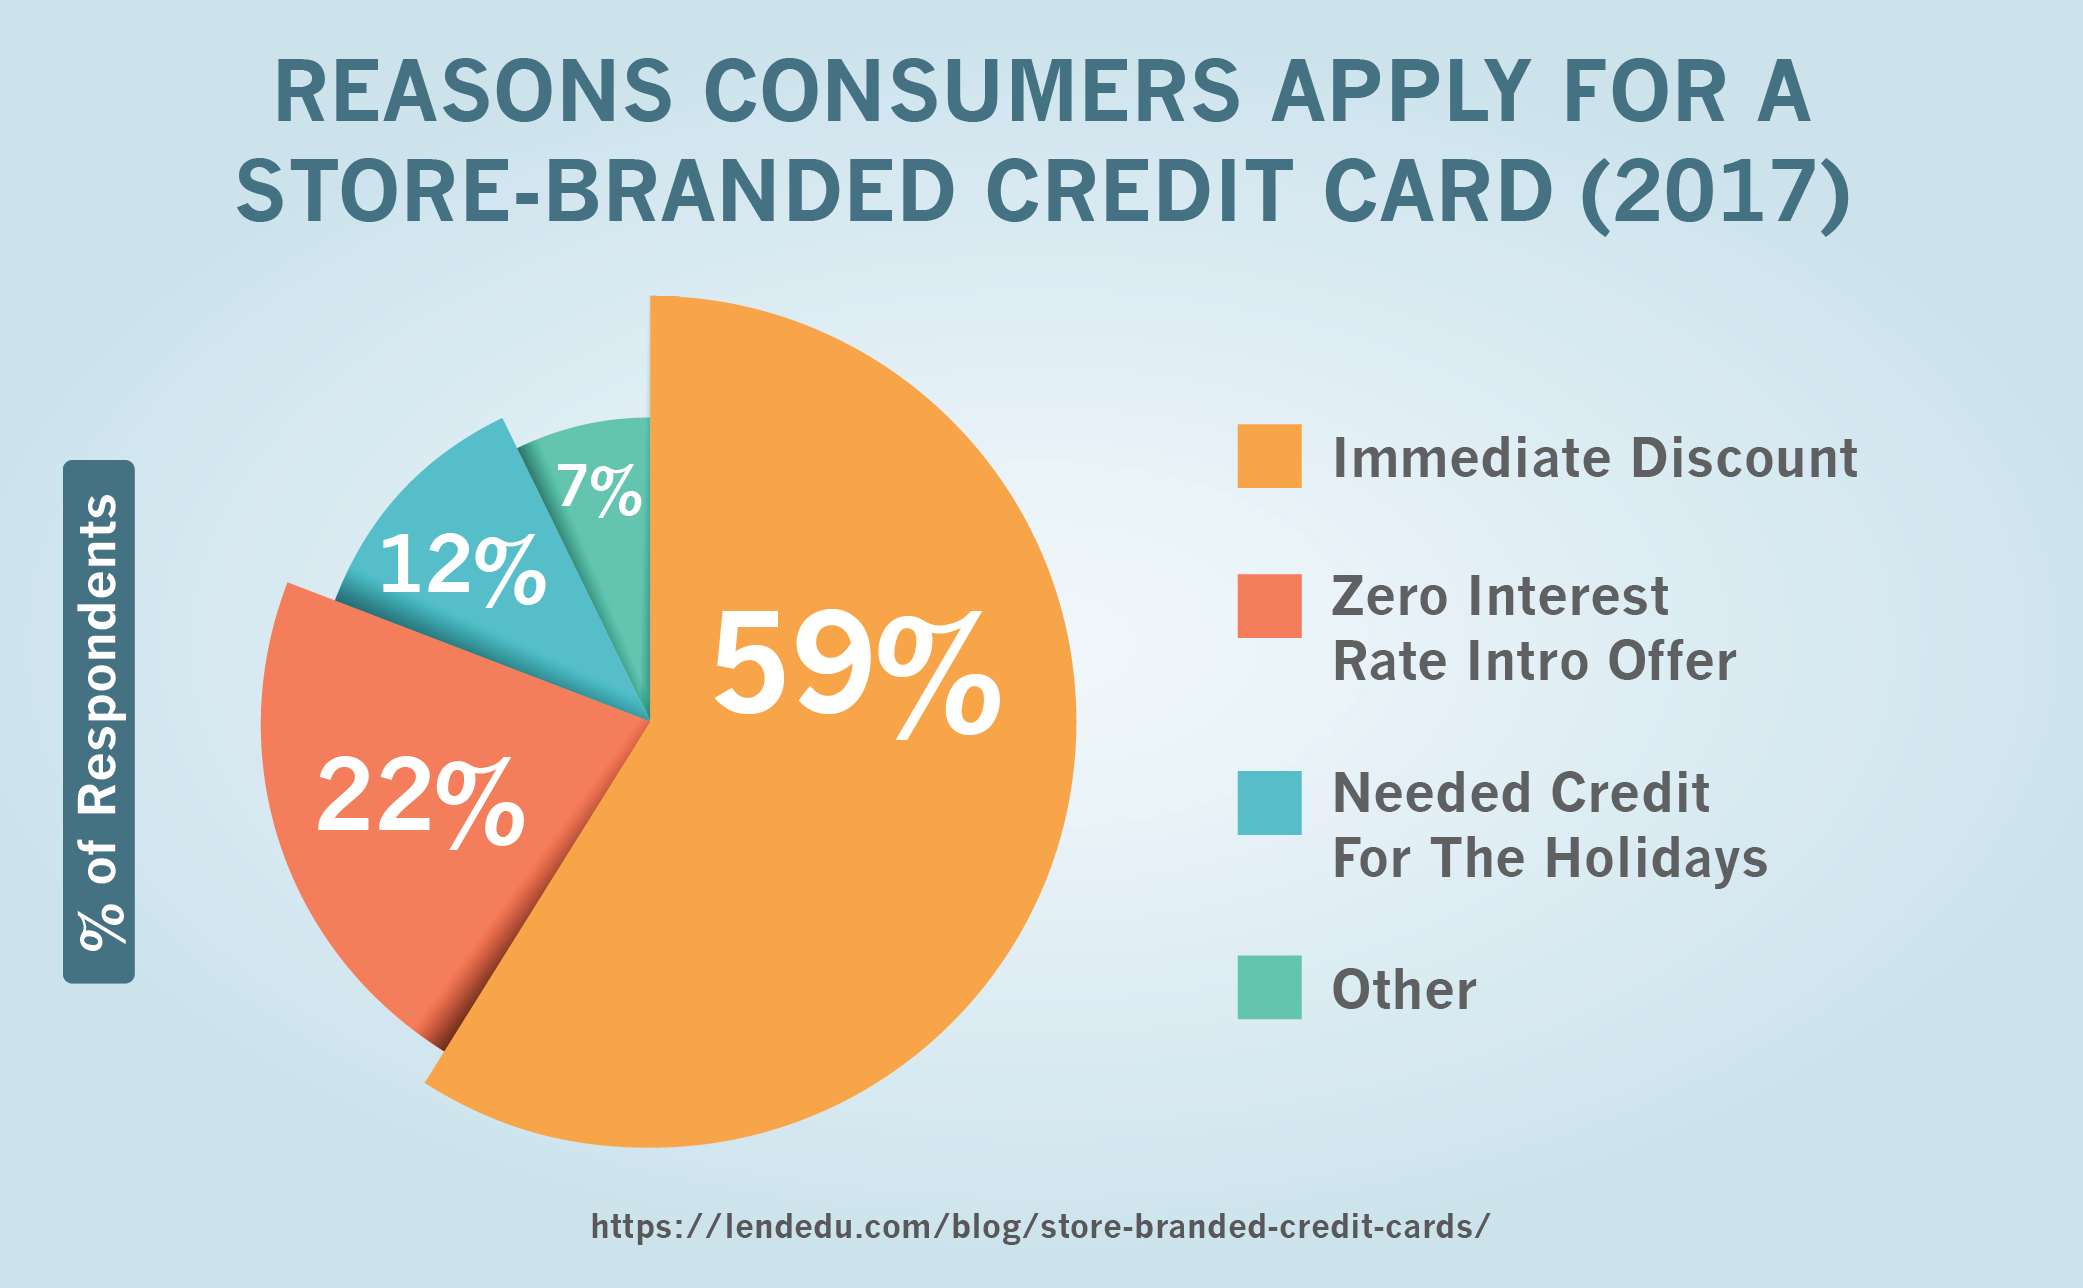 Reasons Consumers Apply for a Store-Branded Credit Card (2017)